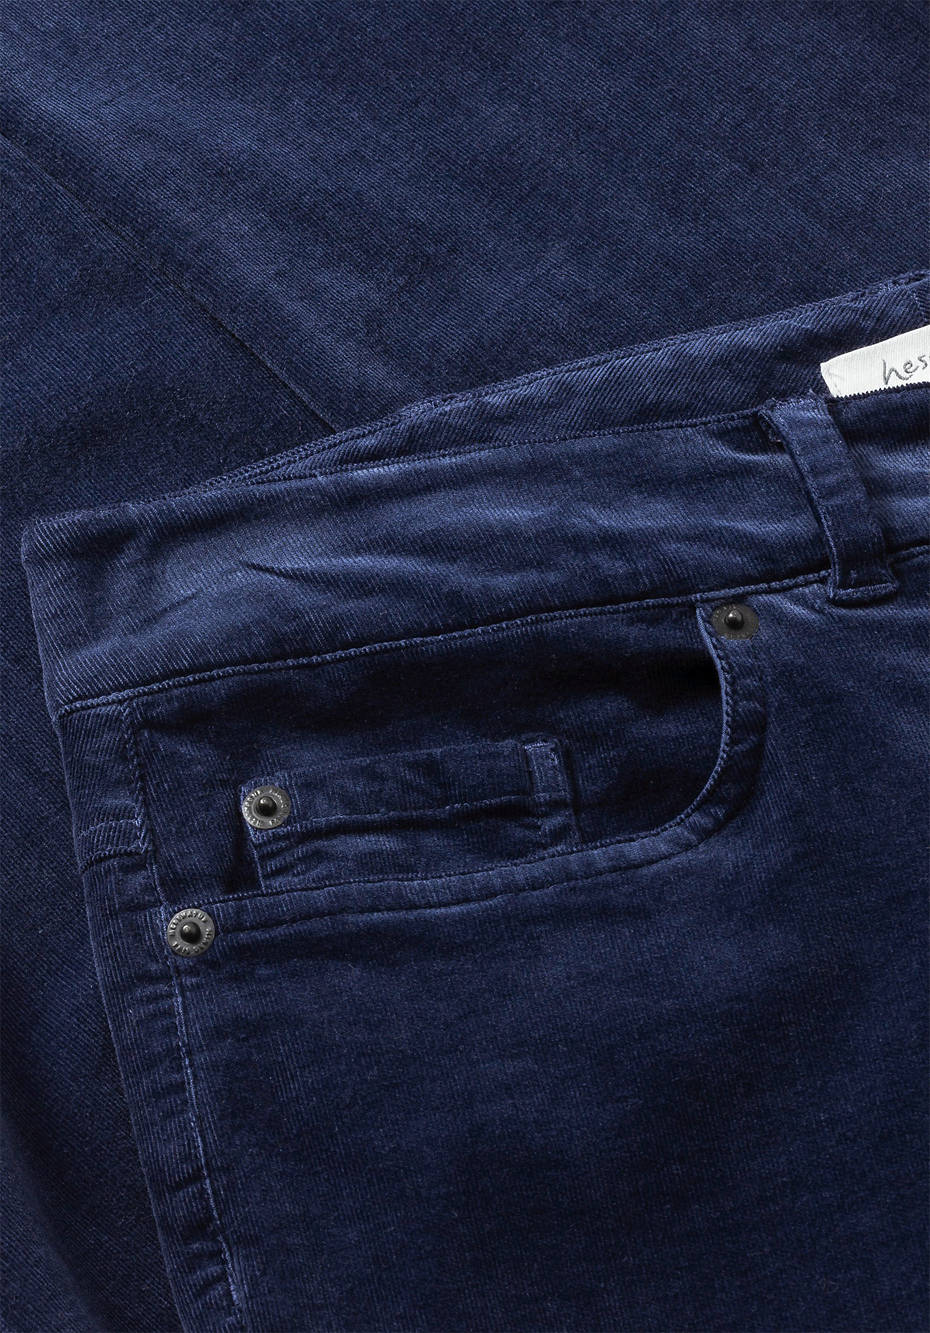 Slim fit corduroy trousers made of organic cotton with hemp